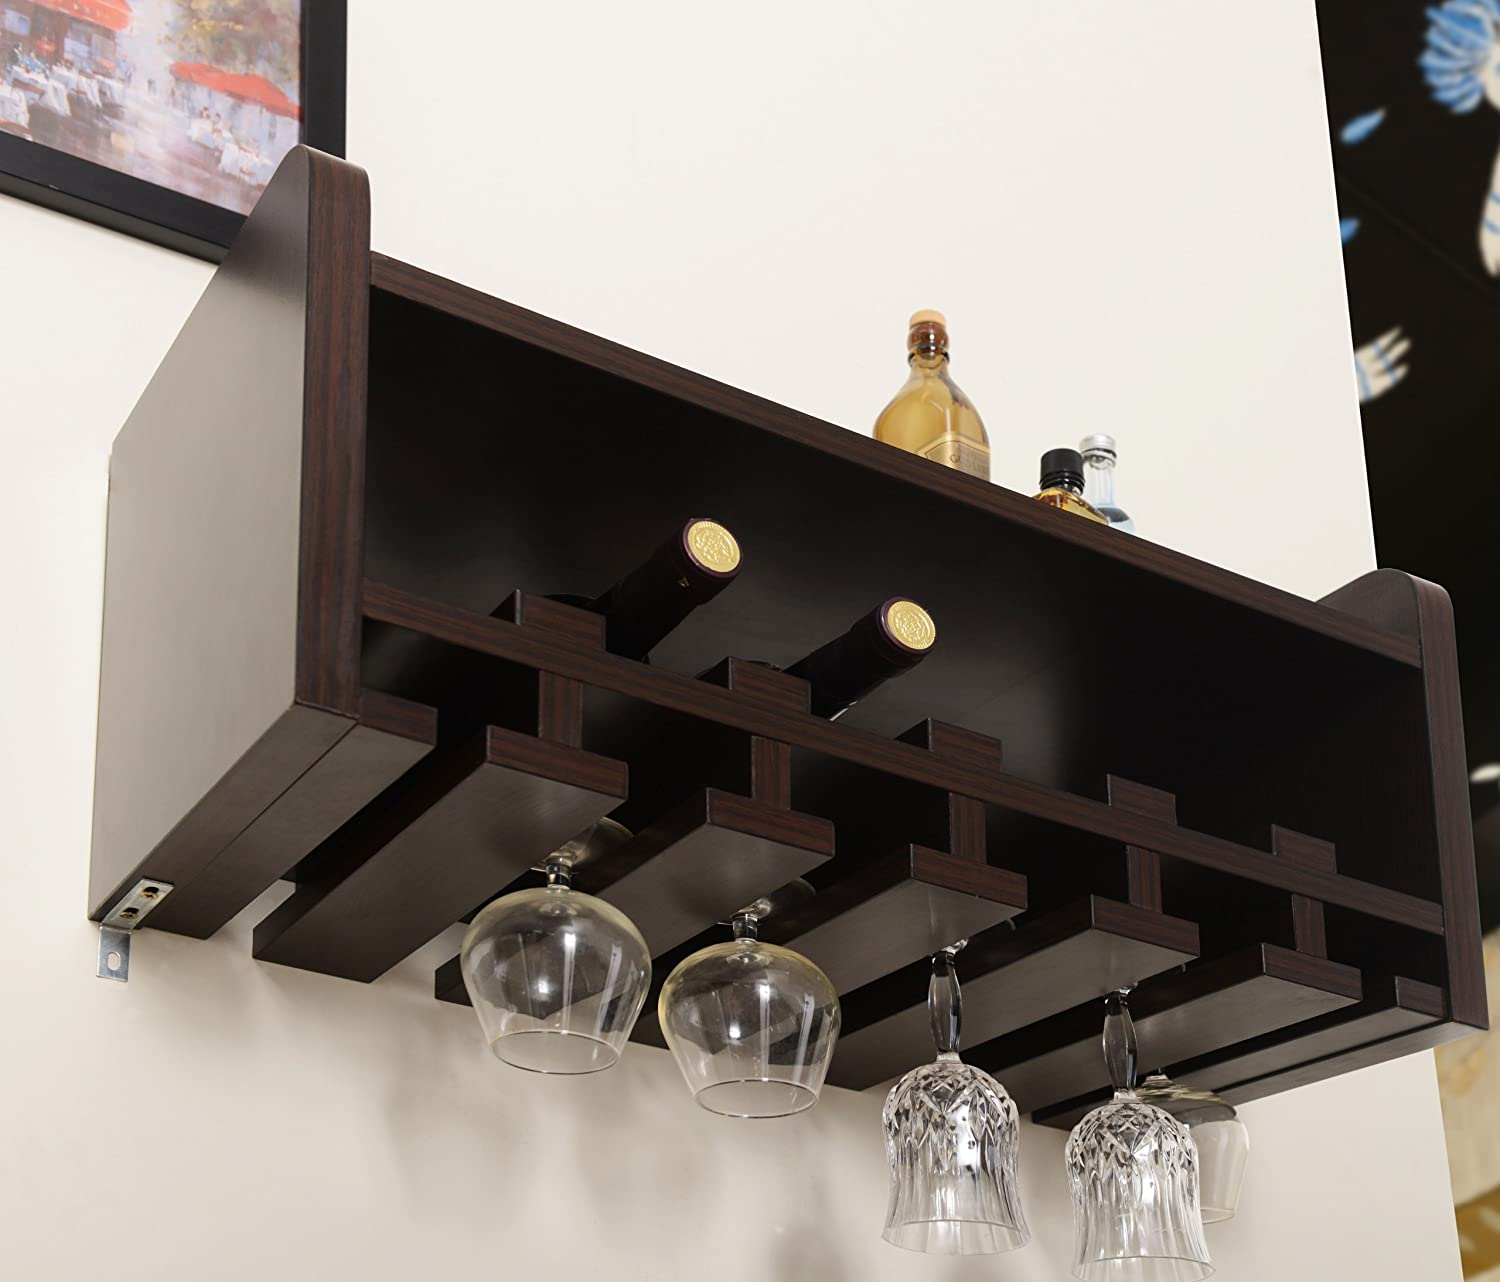 Amazon.com ioHOMES Venire Wall-Mounted Wine Rack and Glass Holder Walnut Kitchen u0026 Dining & Amazon.com: ioHOMES Venire Wall-Mounted Wine Rack and Glass Holder ...